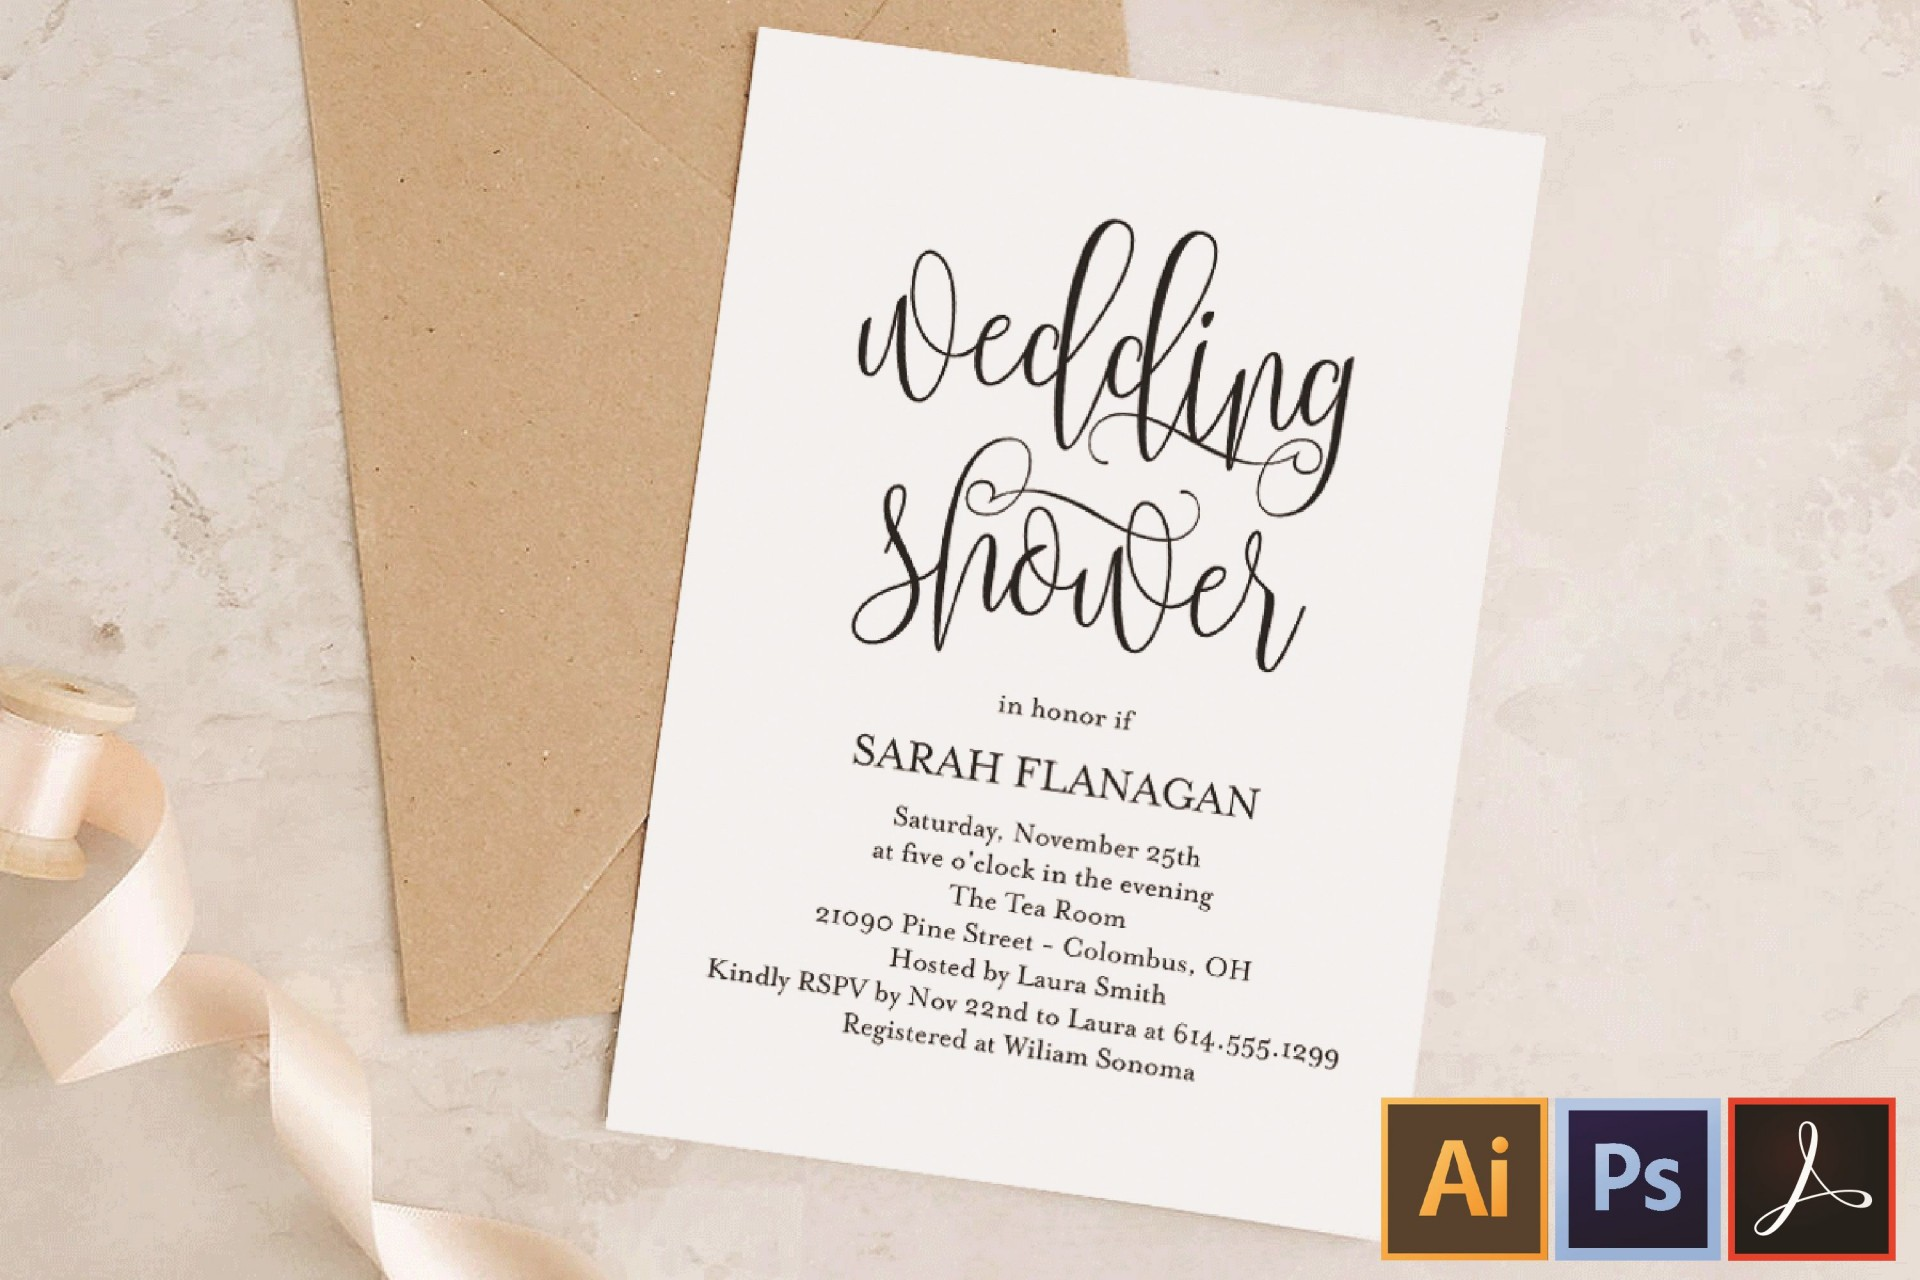 003 Fascinating Wedding Shower Invitation Template Highest Clarity  Templates Bridal Pinterest Microsoft Word Free For1920